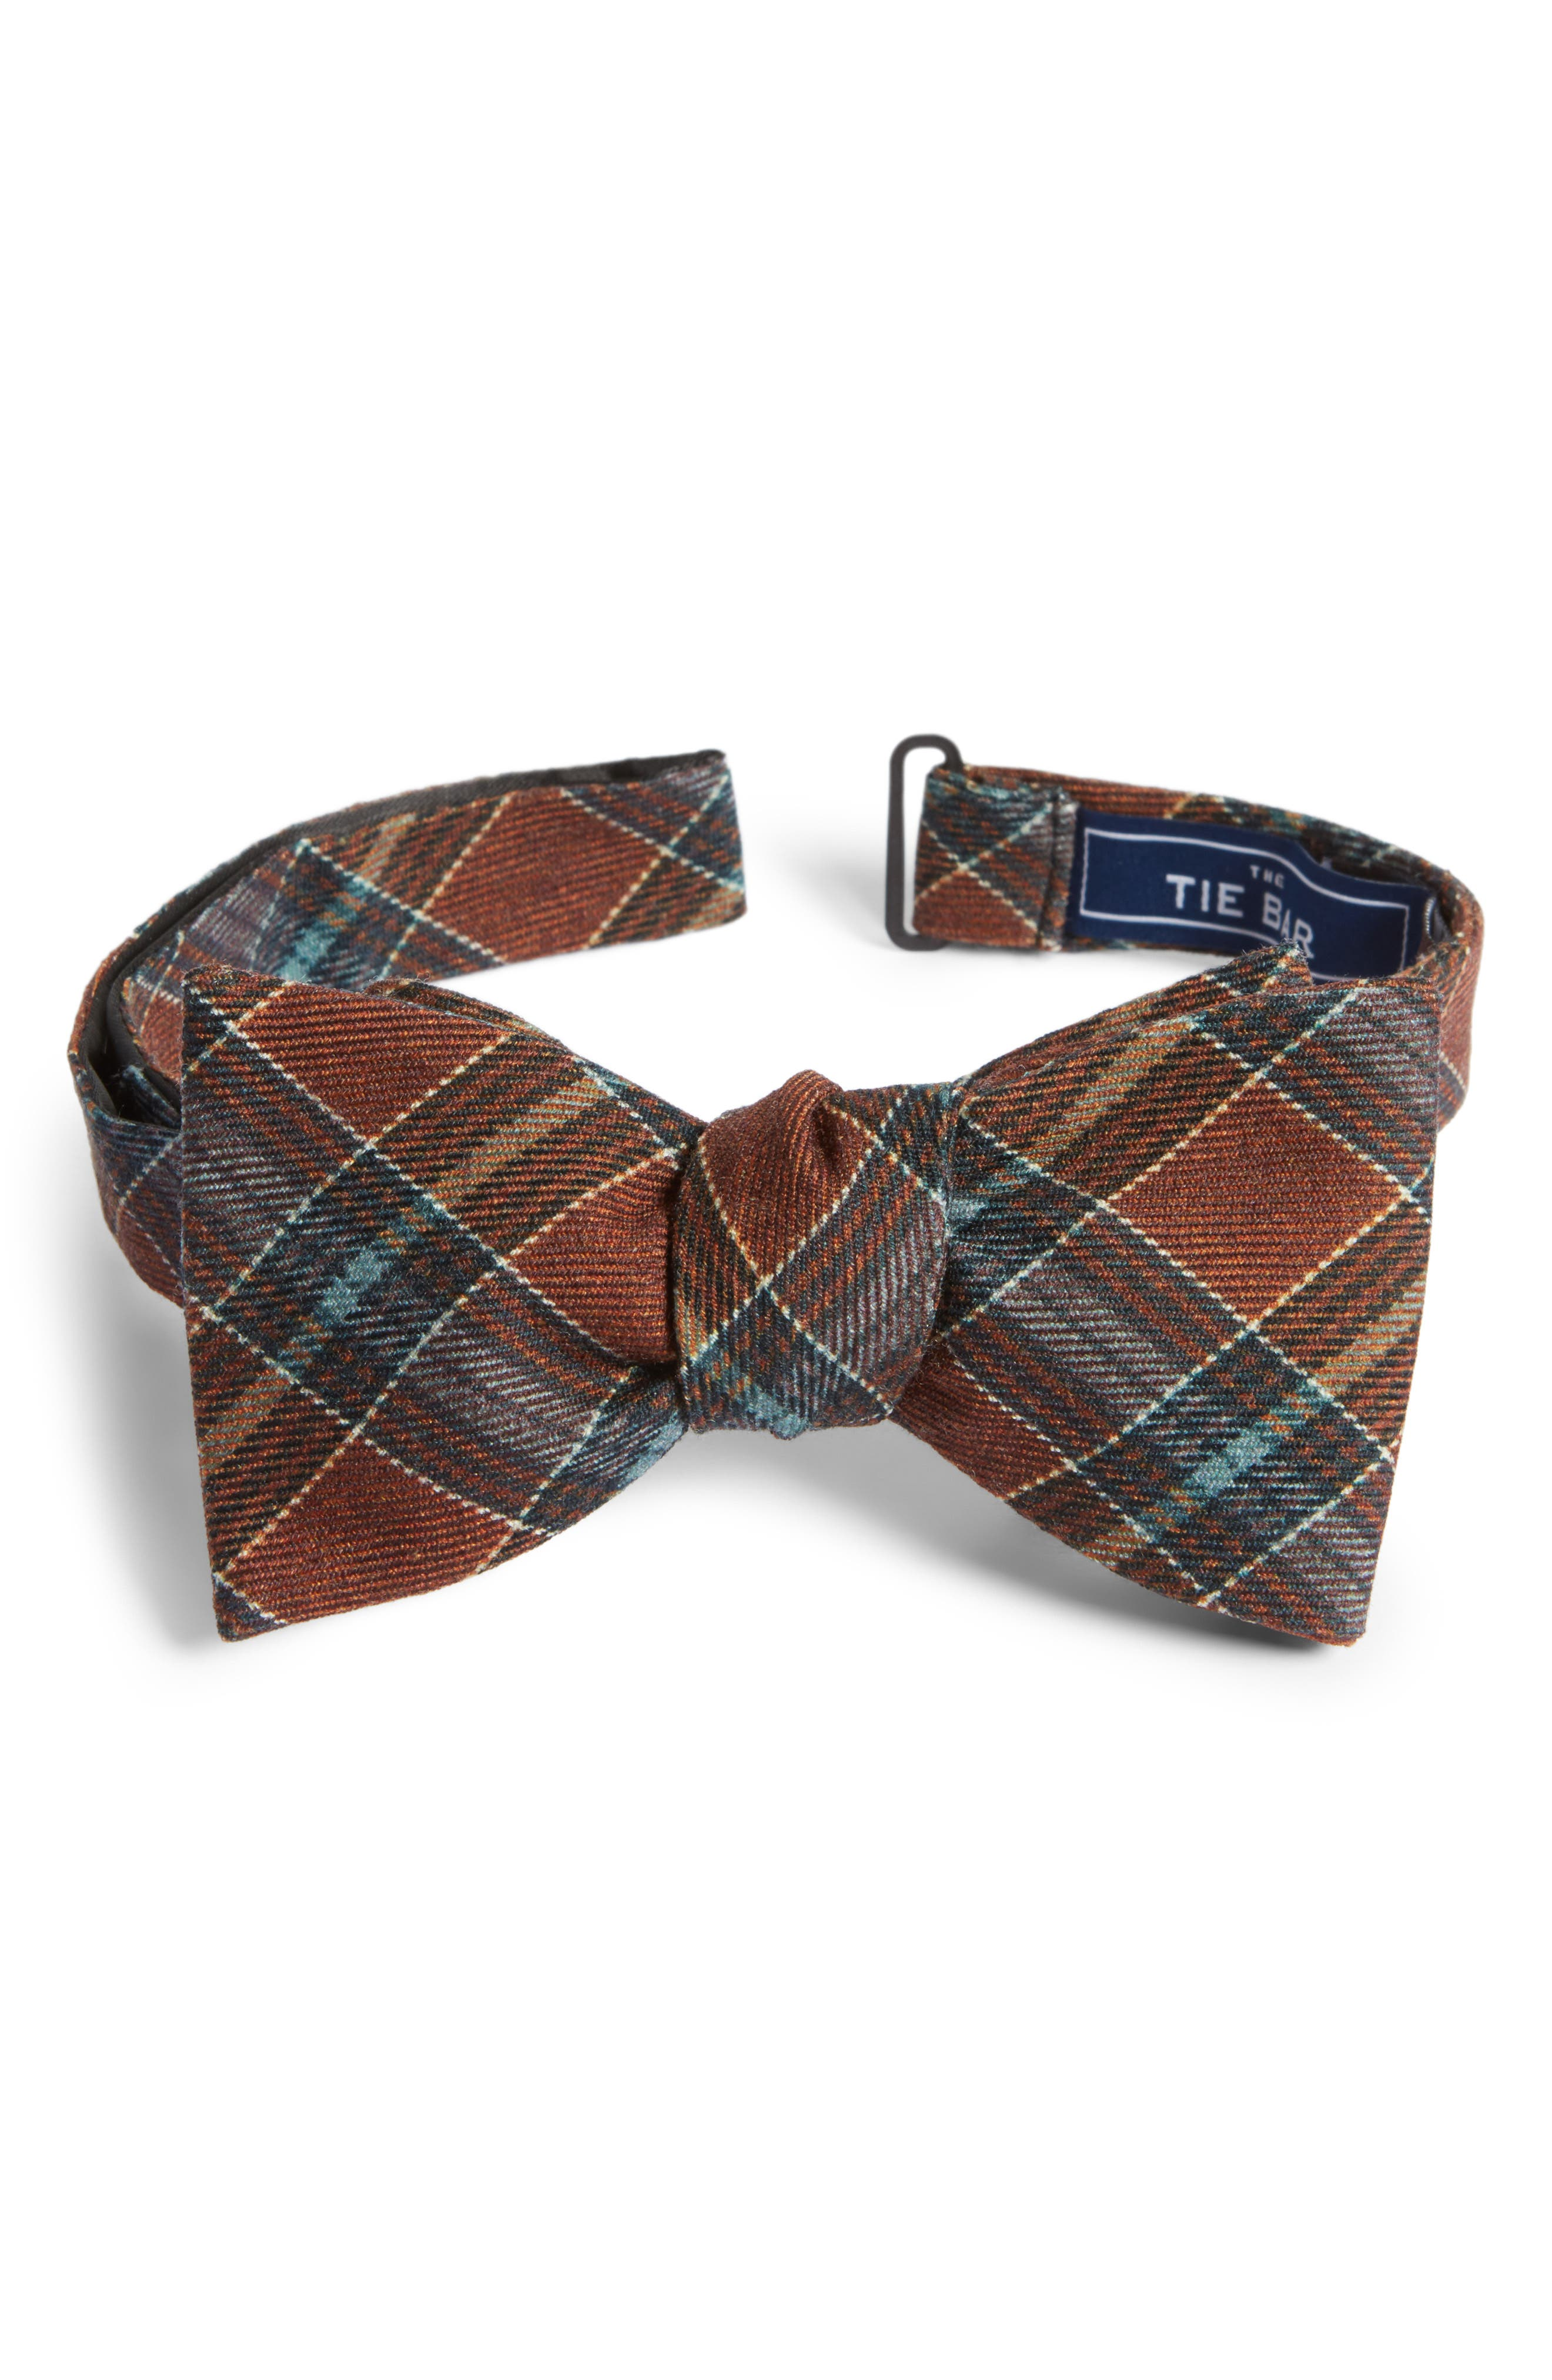 The Tie Bar Pittsfield Plaid Wool Bow Tie